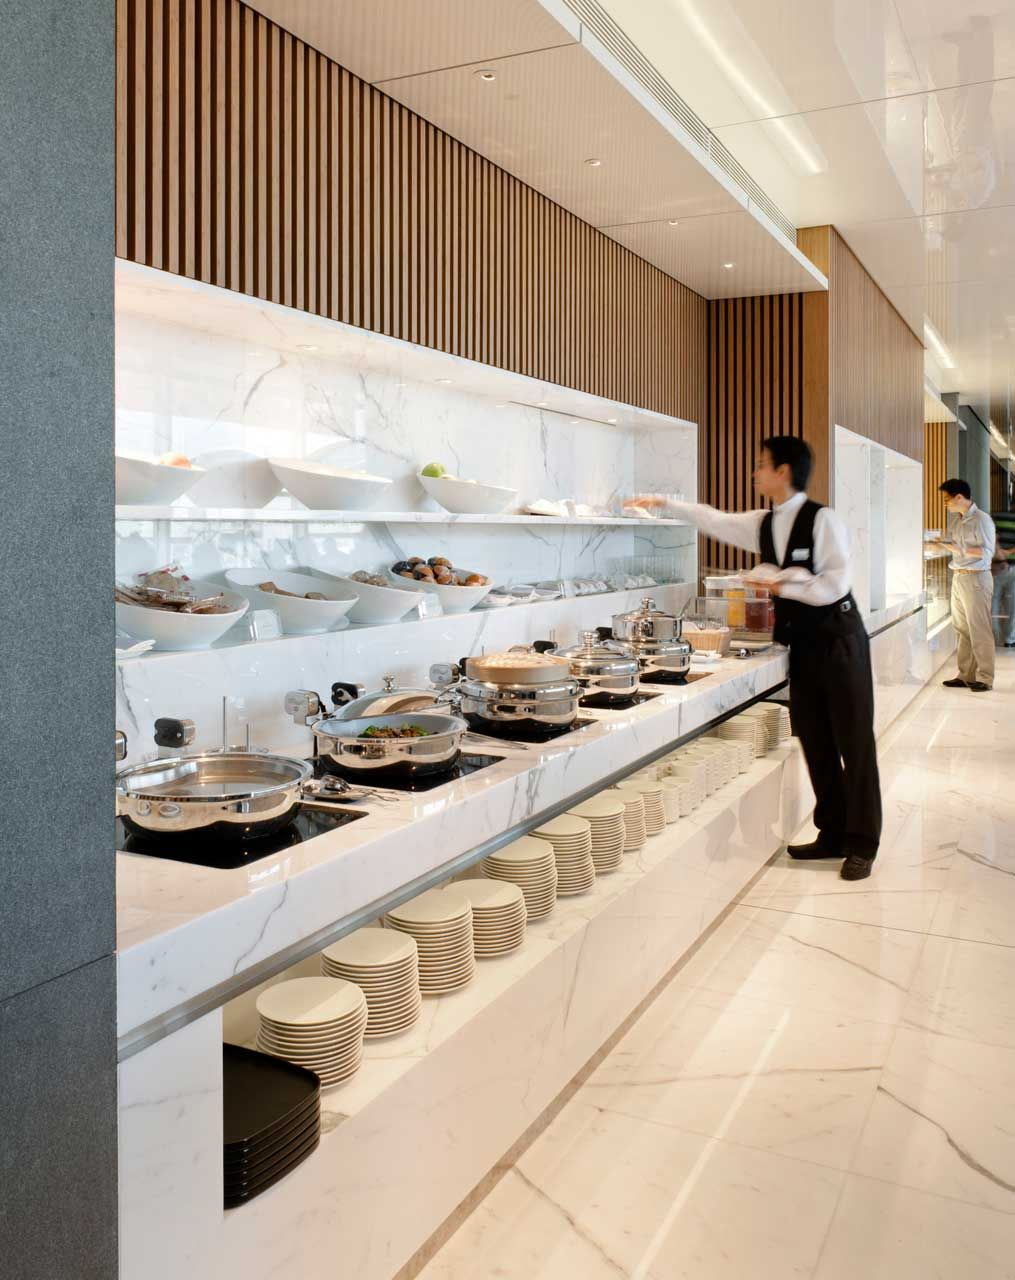 Kuche Store Jakarta Cathay Pacific Lounges Hong Kong International Airport